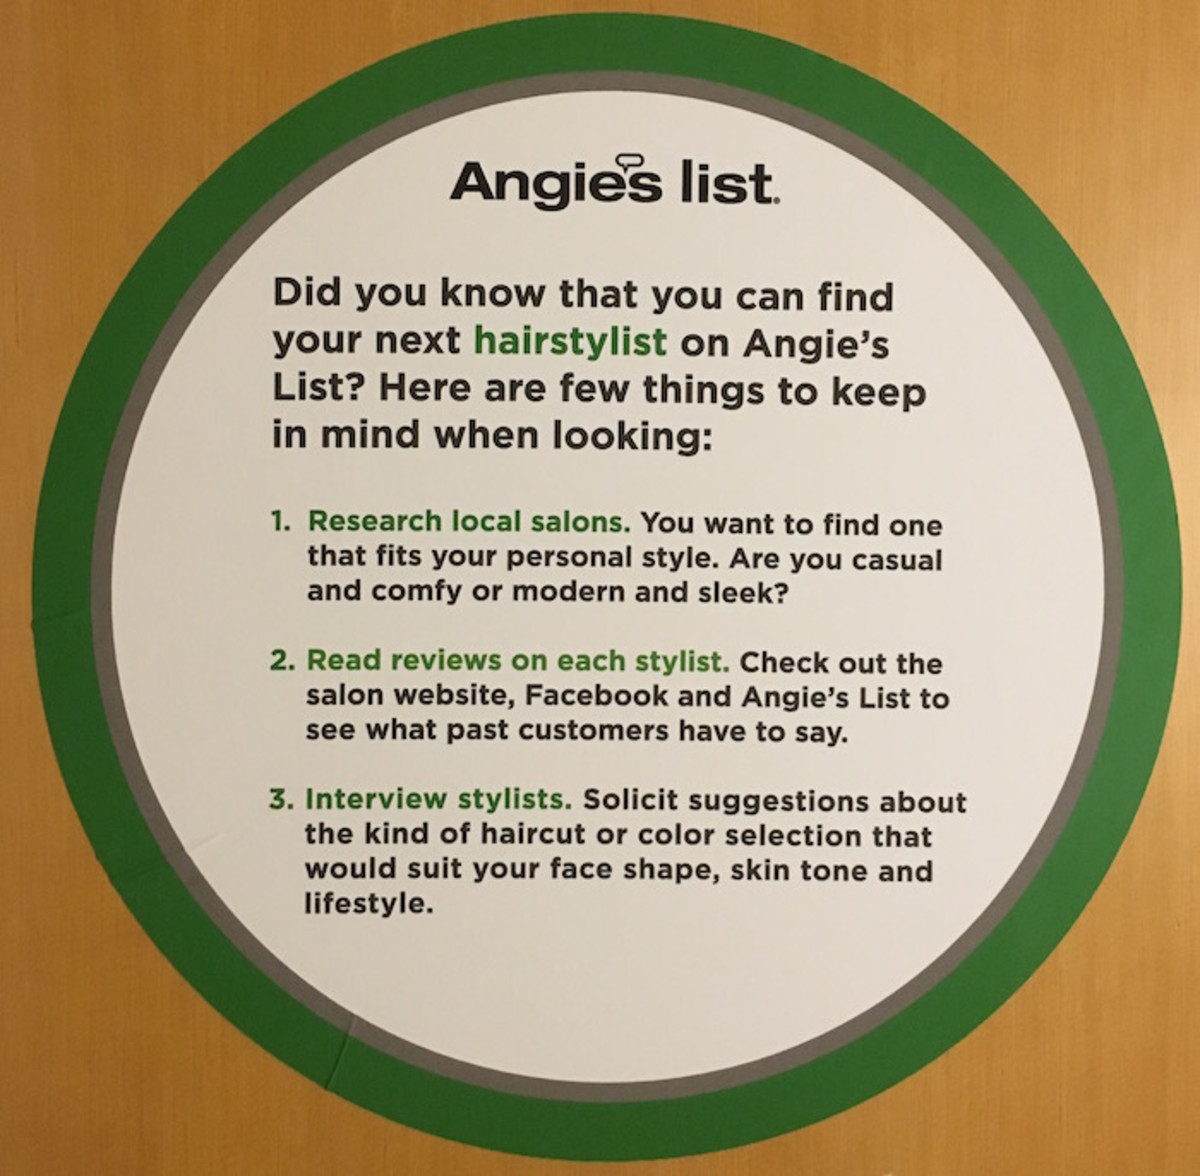 angies list tips